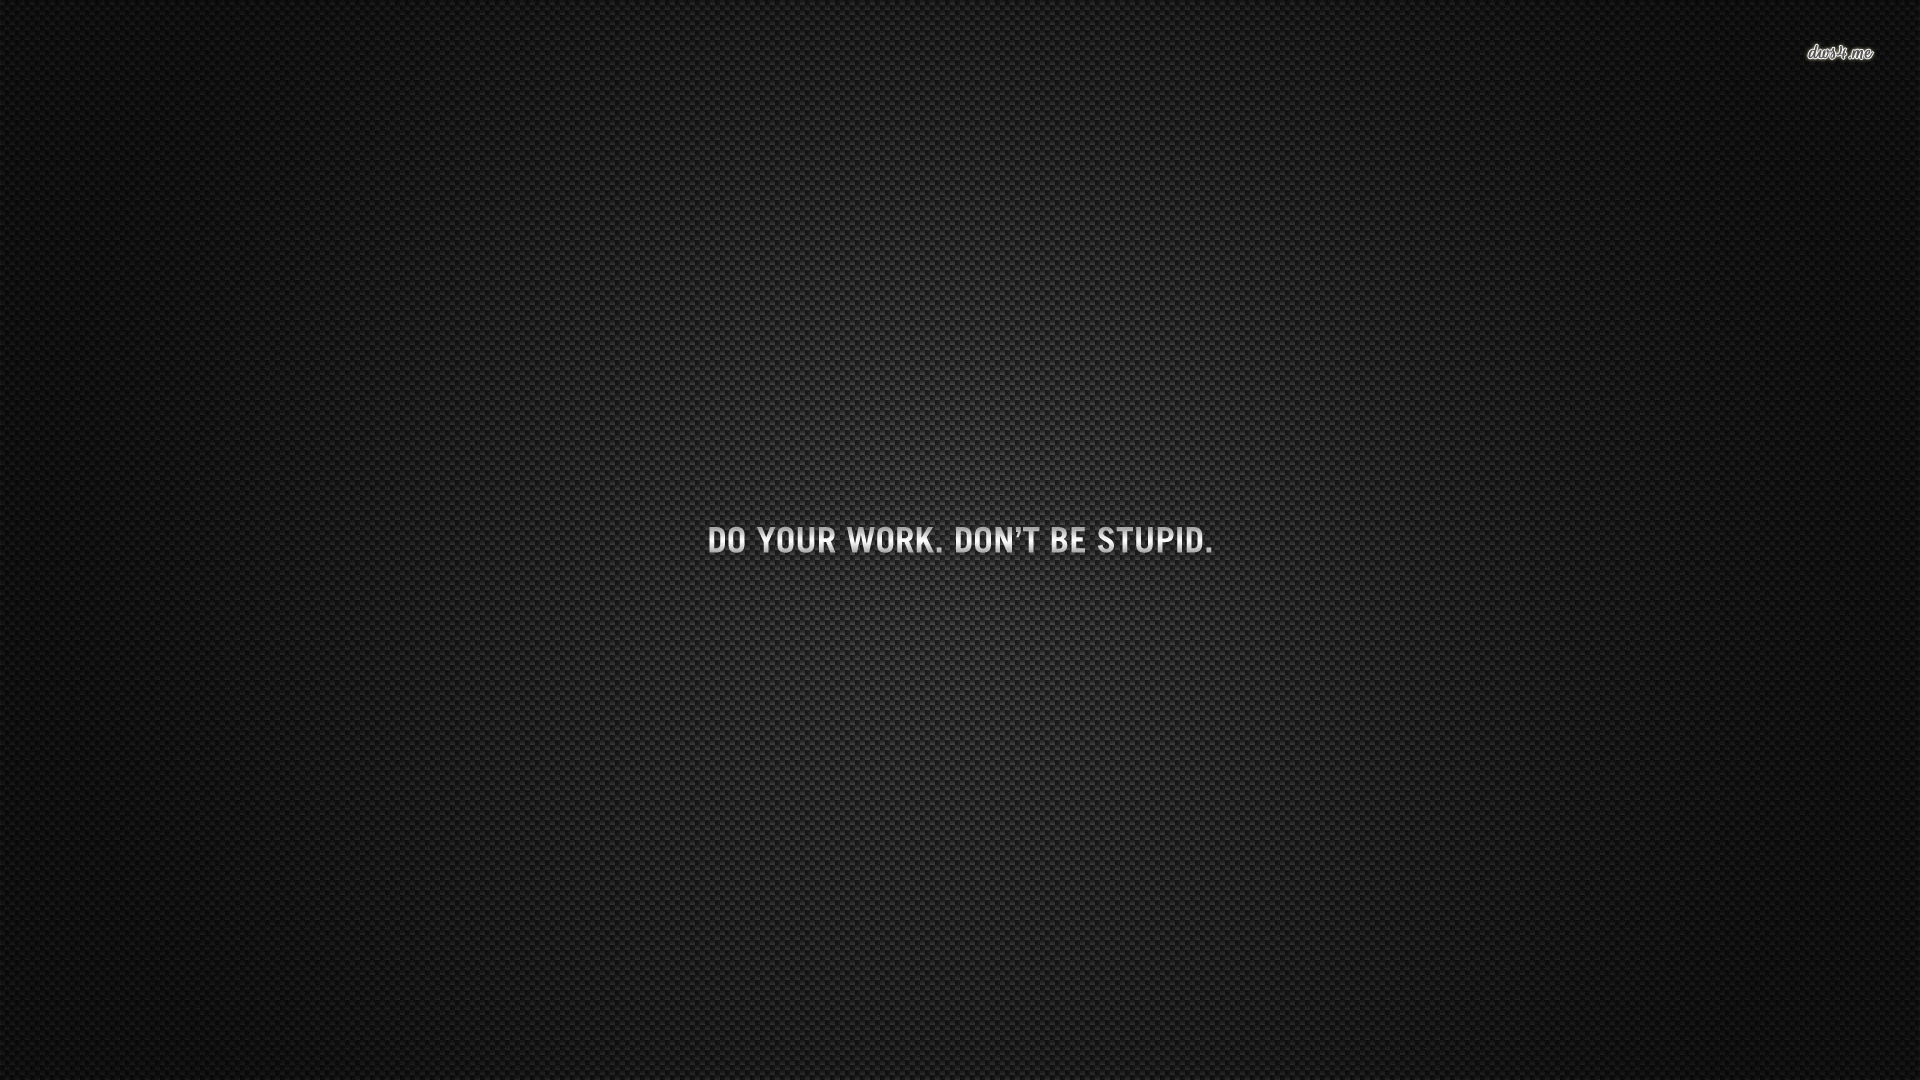 Do Your Work wallpapers HD   290955 1920x1080